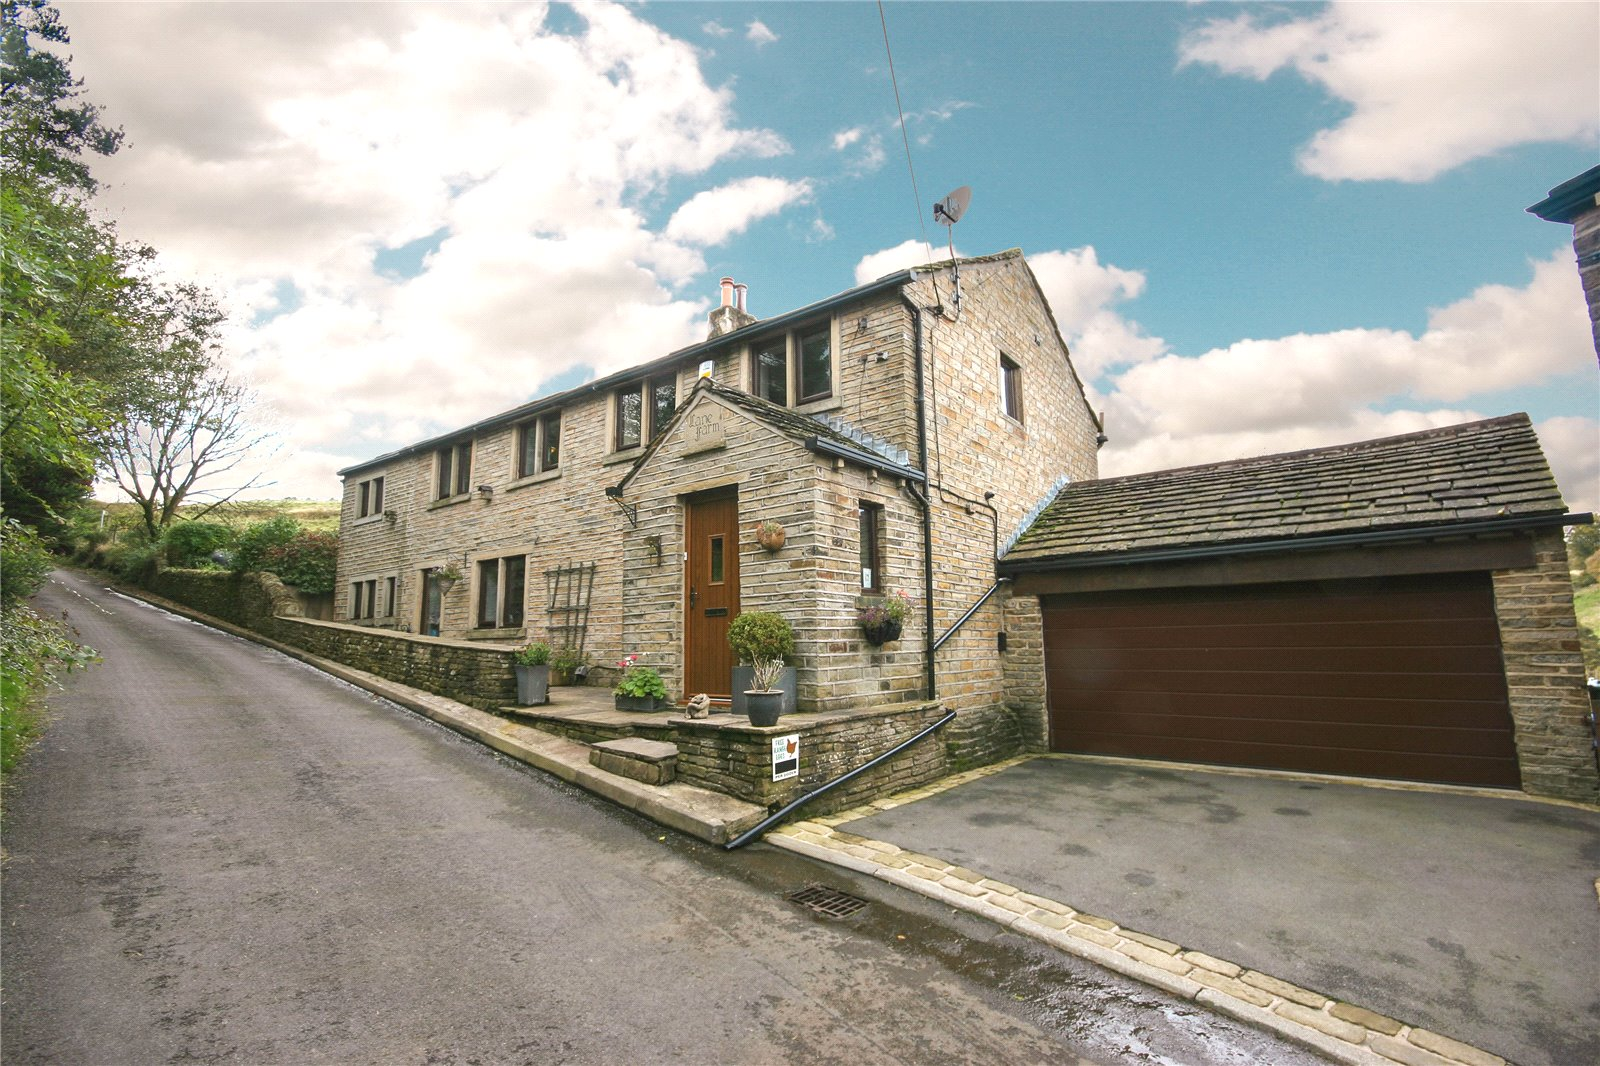 5 Bedrooms Detached House for sale in Mellor Lane, Holmfirth, West Yorkshire, HD9